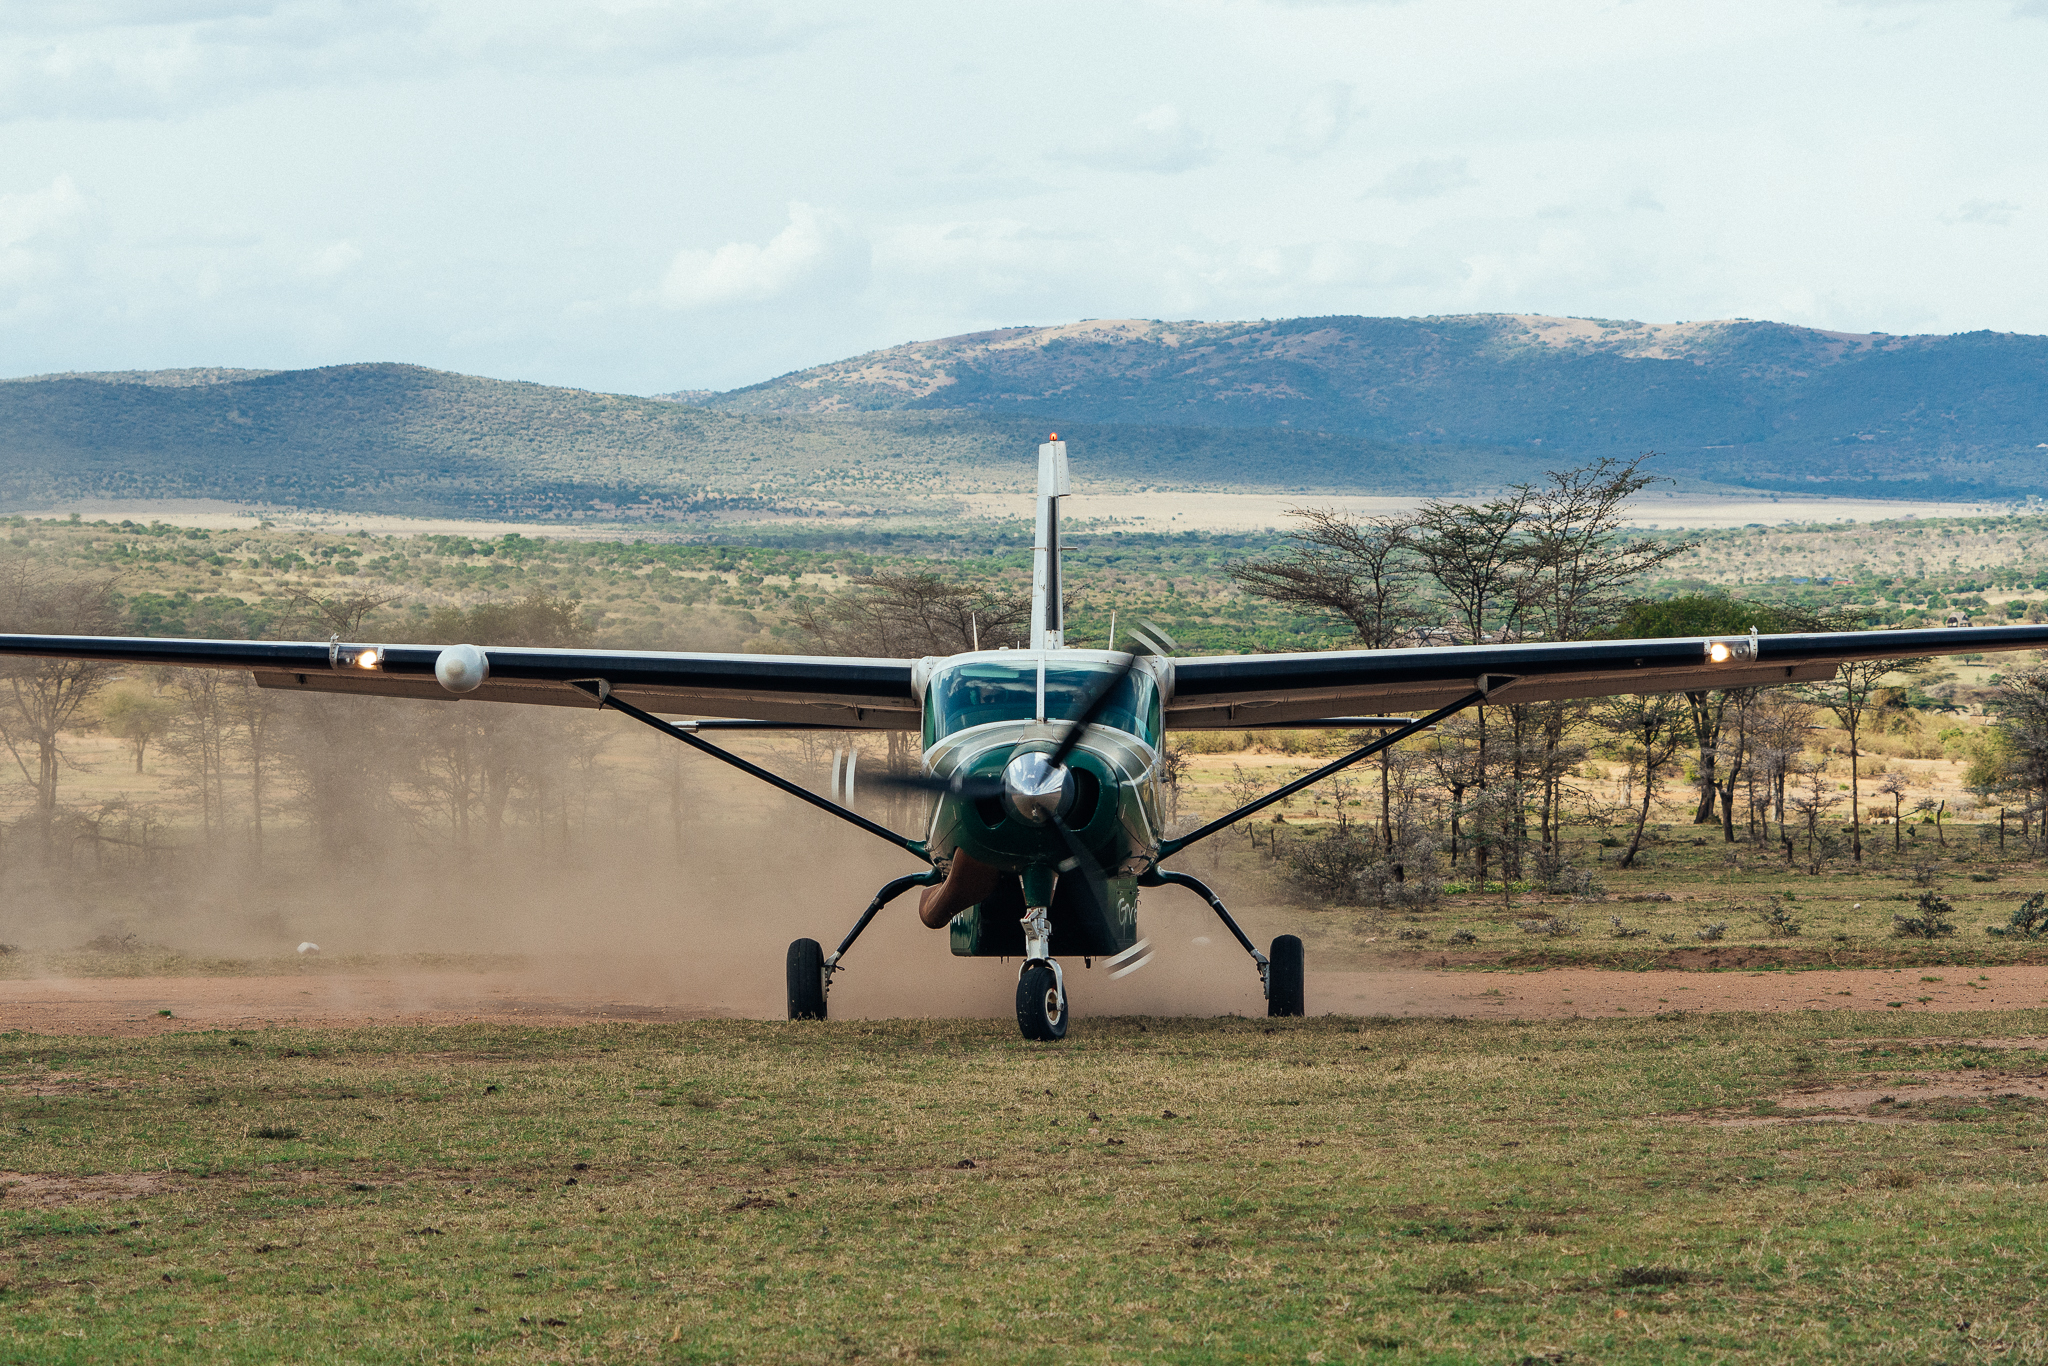 Nairobi to Cottars 1020 Safari Camp Air Strip in Kenya ph by Dave Krugman